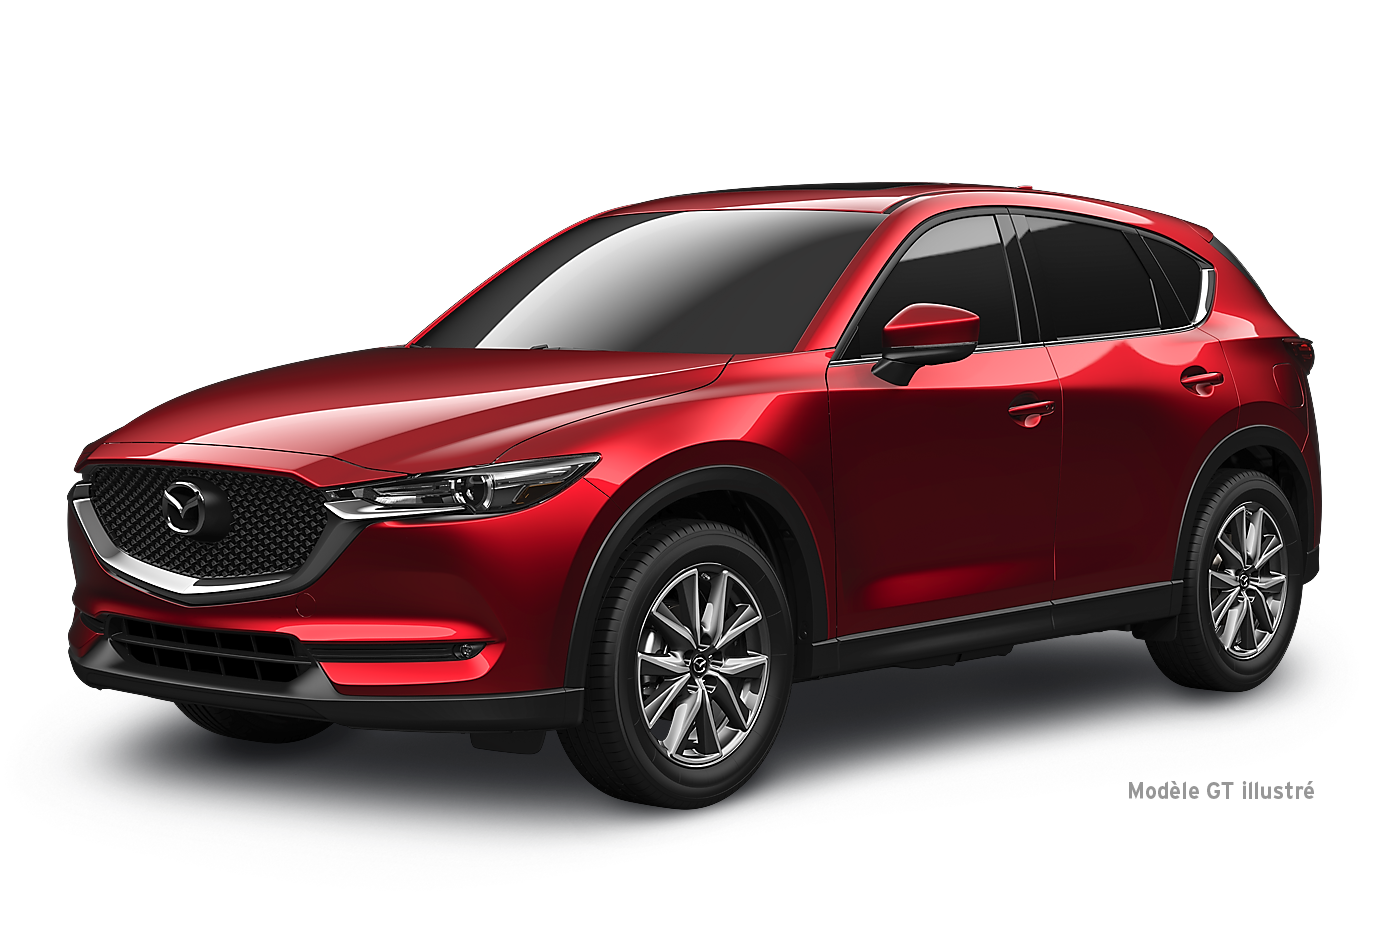 mazda cx 5 gx 2018 promotion cowansville mazda cowansville. Black Bedroom Furniture Sets. Home Design Ideas